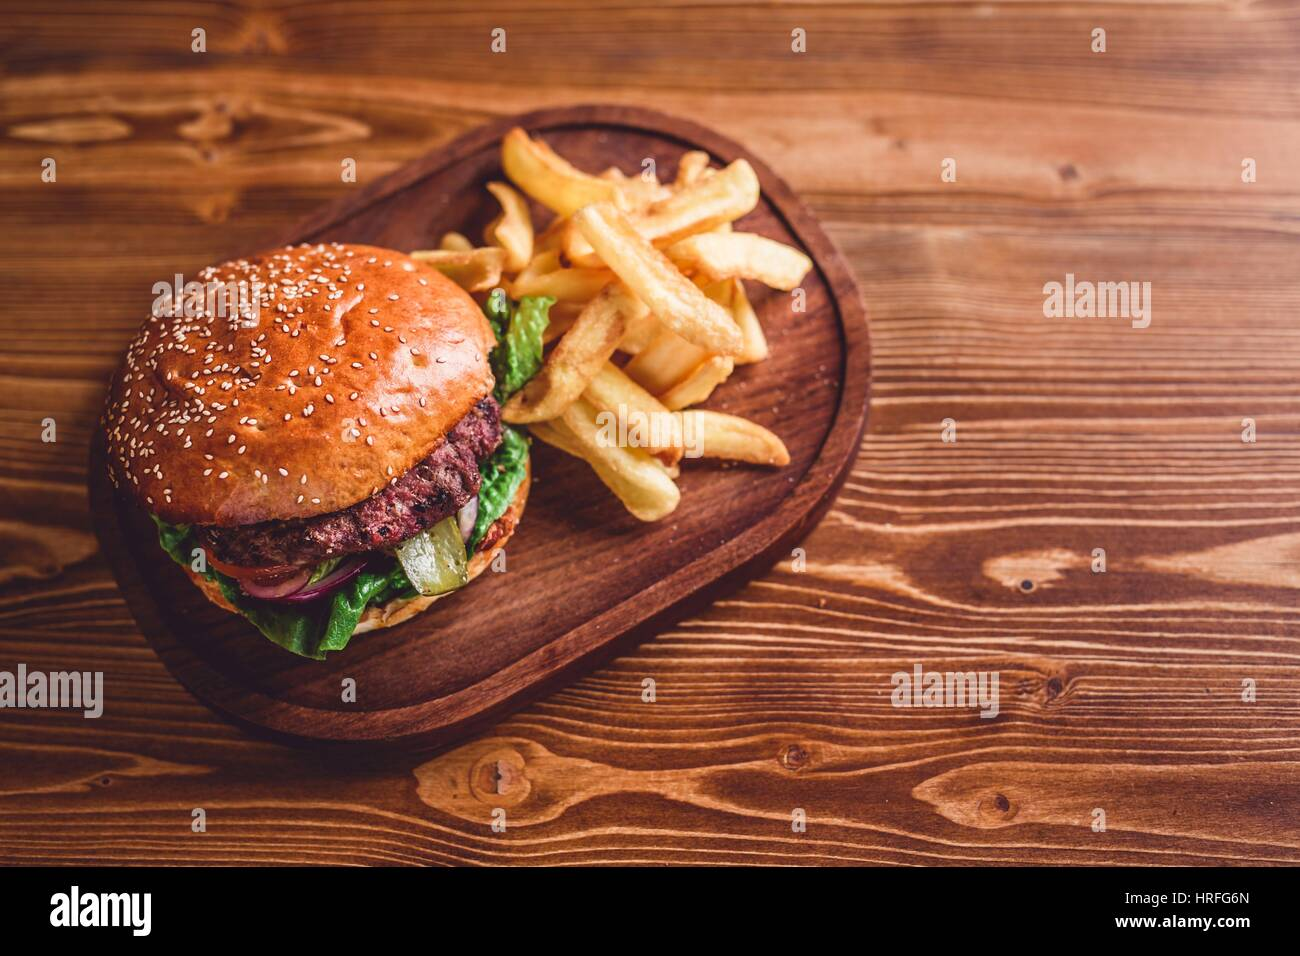 Top view on fresh burger on wooden table stock photo for Table burger